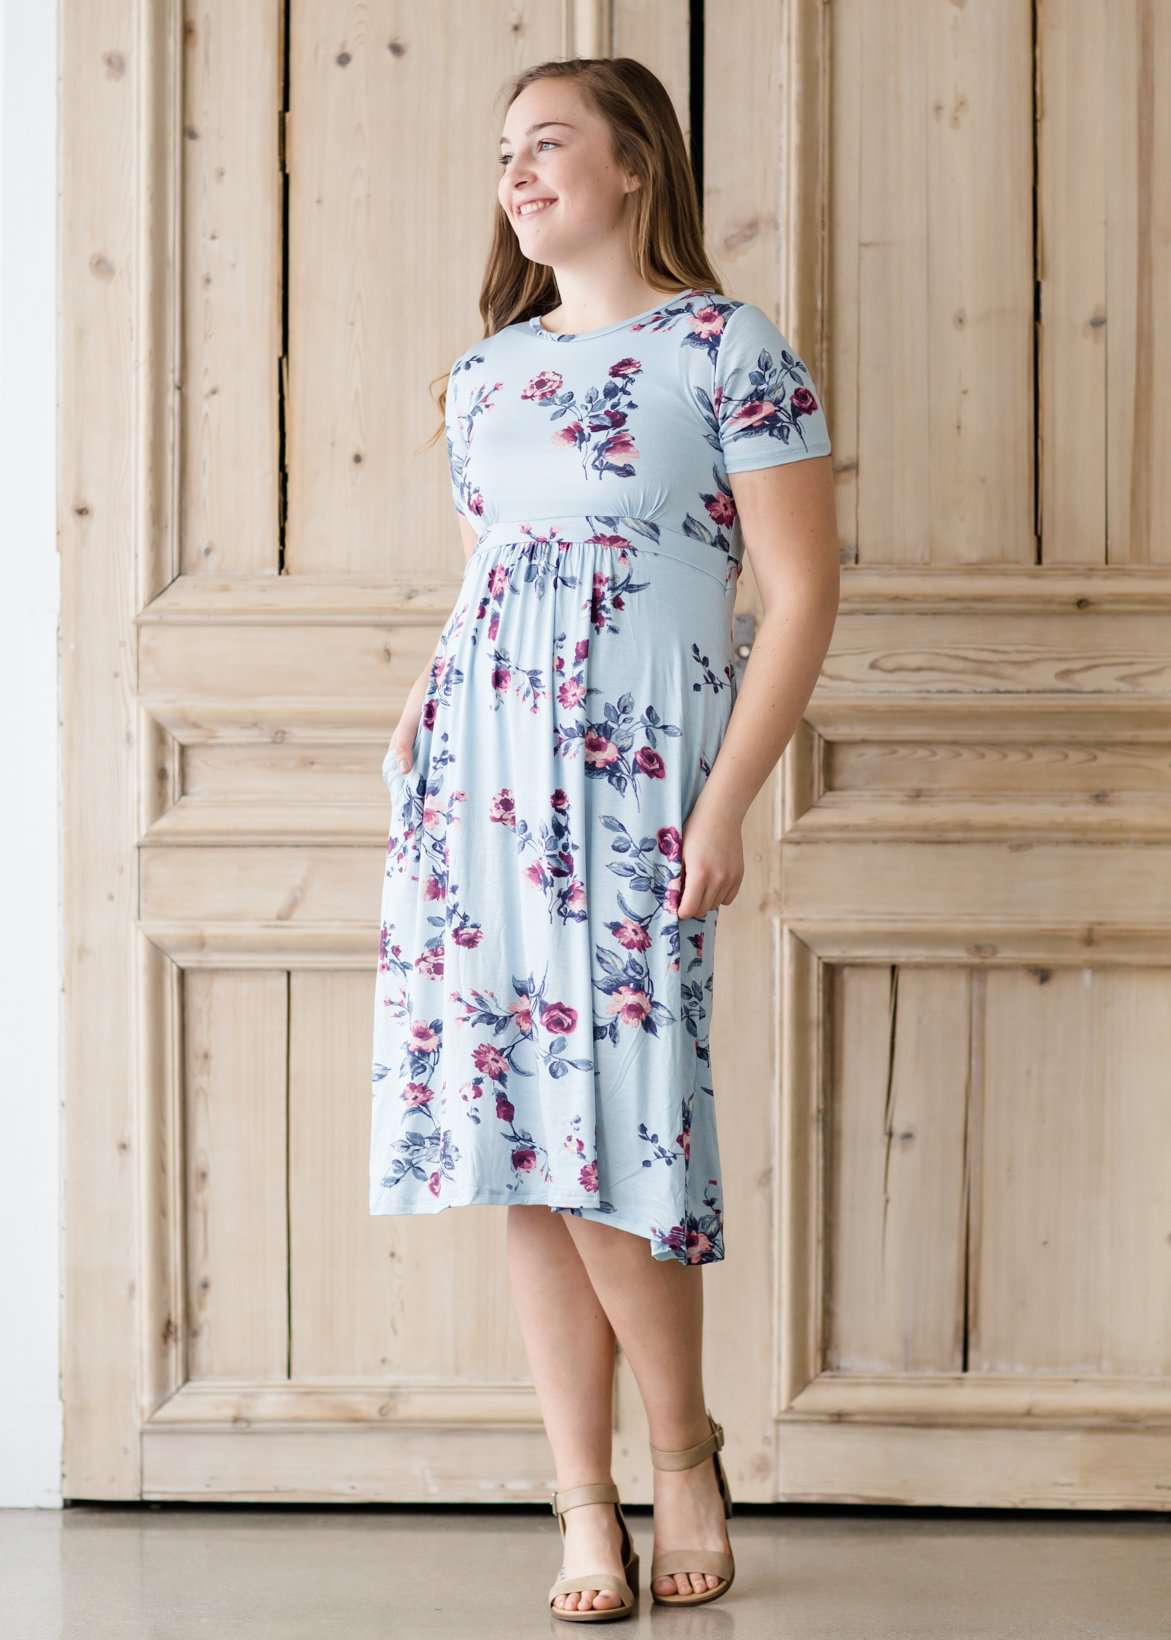 Woman wearing a light blue modest empire waist midi dress with flowers on it